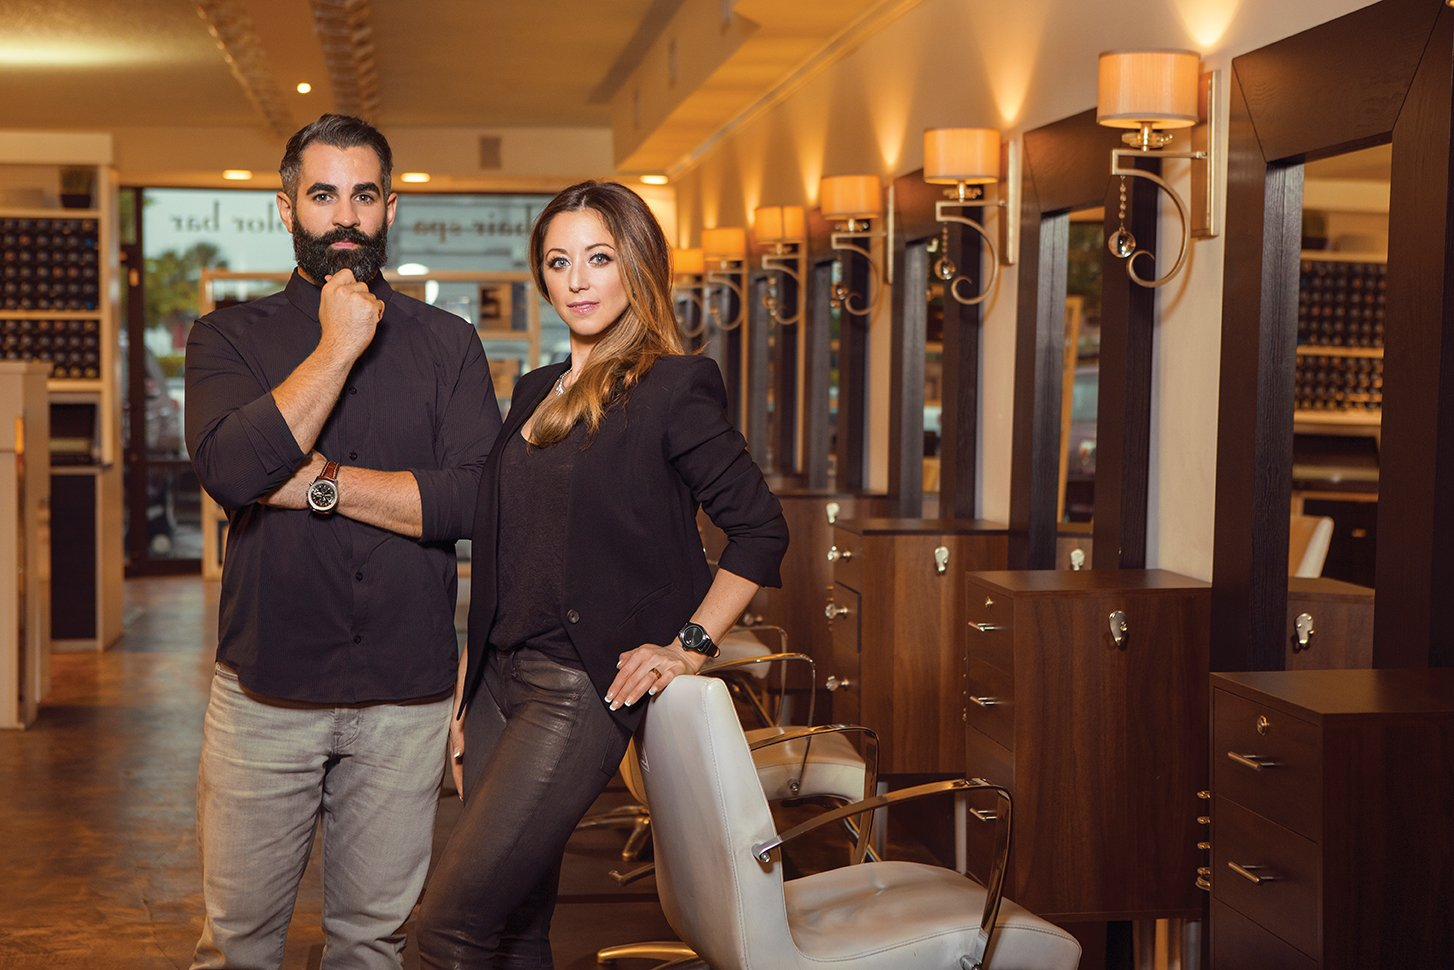 Ryan Cortello and Courtney Costello developed a solid system for fueling salon growth by focusing on their team at Cortello Salon in Jacksonville, Florida.